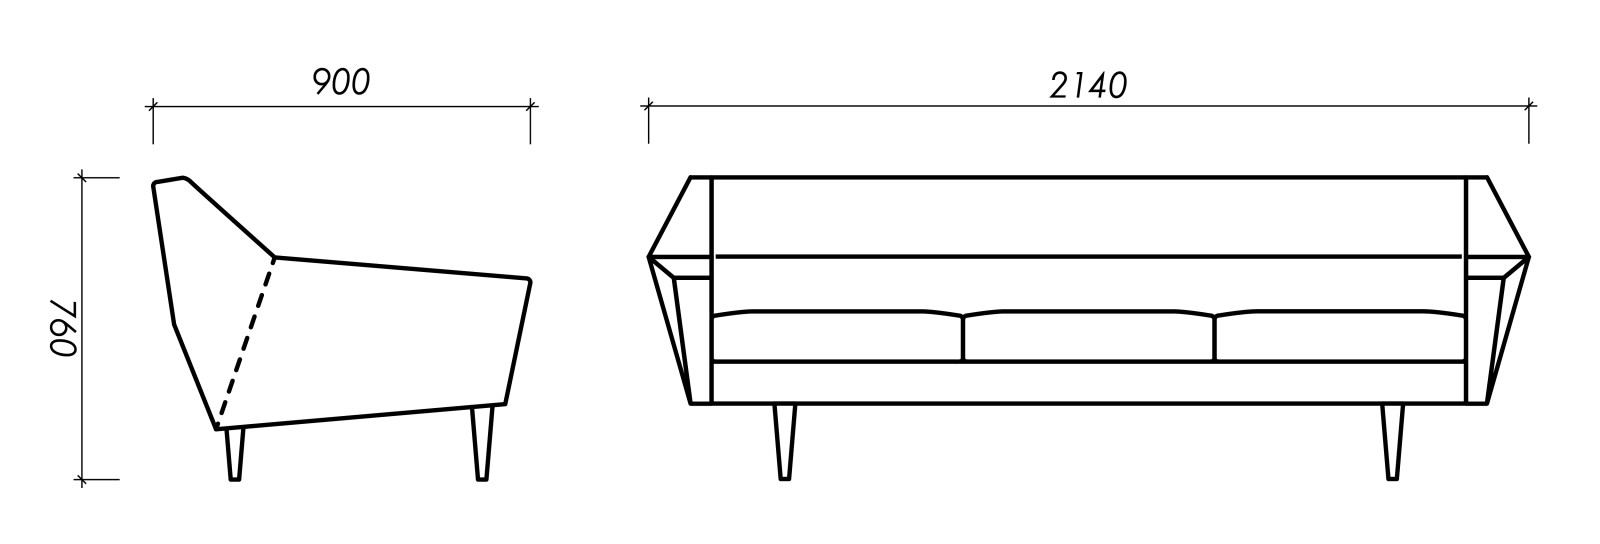 Dimensions of Oot-Oot Studio furniture product Cosmo sofa